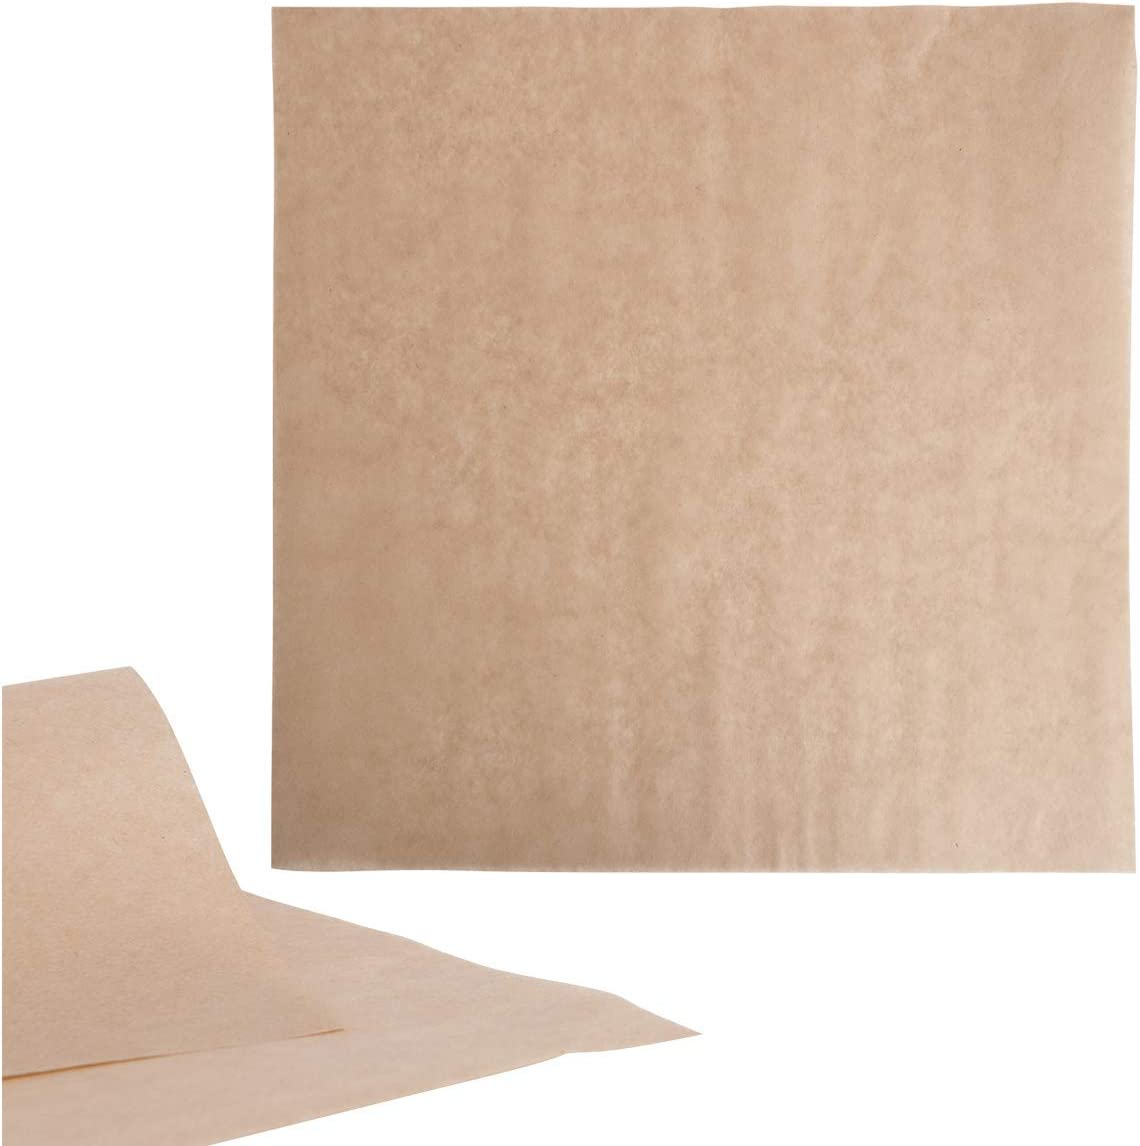 MM Foodservice 12 Inch x 12 Inch Natural Kraft Basket Liner, Grease Resistant Deli Paper, Food Grade Brown Tissue Kraft Paper Sheets, Perfect for Food Baskets, Burgers and French Fries (Pack of 100)